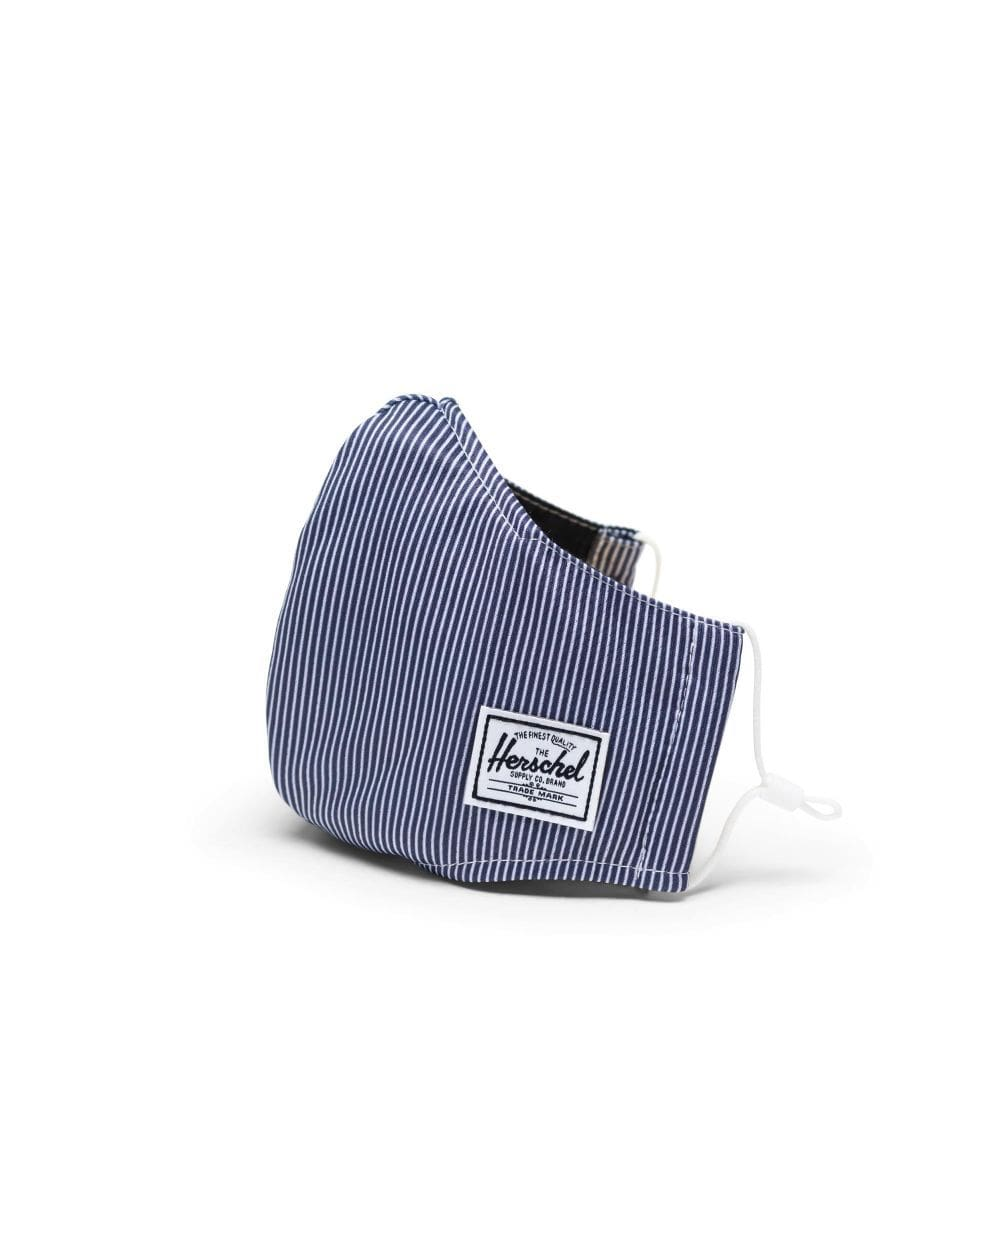 HerschelCLASSIC FITTED FACE MASK Peacoat Engineered Stripe - arcmaszk, szájmaszk